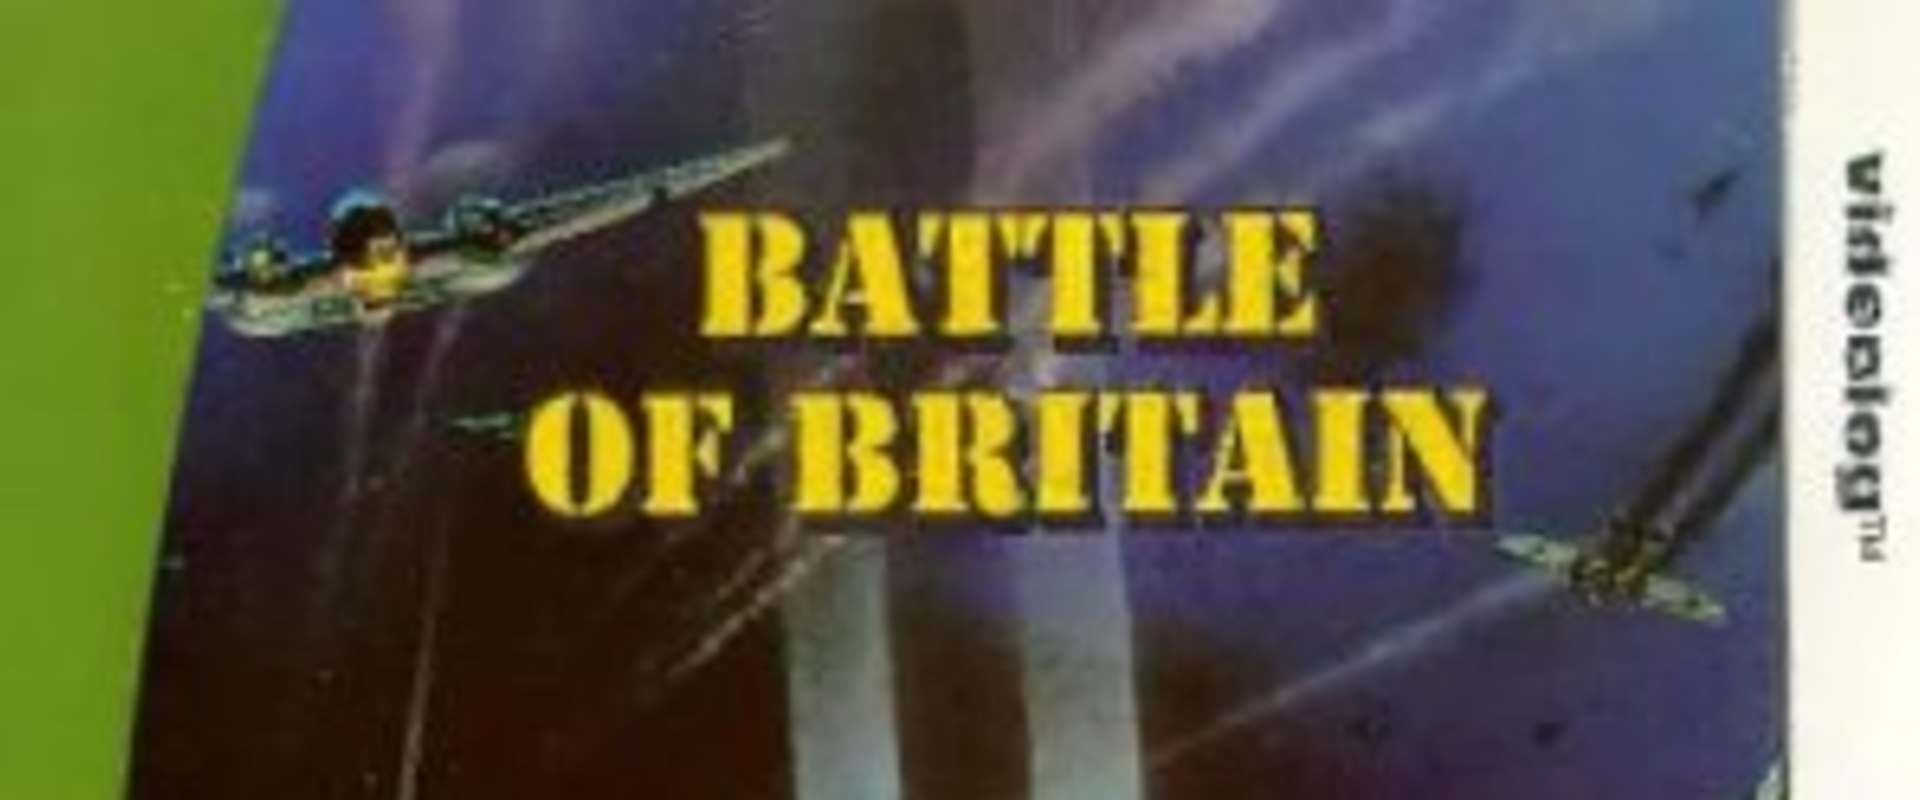 Battle of Britain background 2